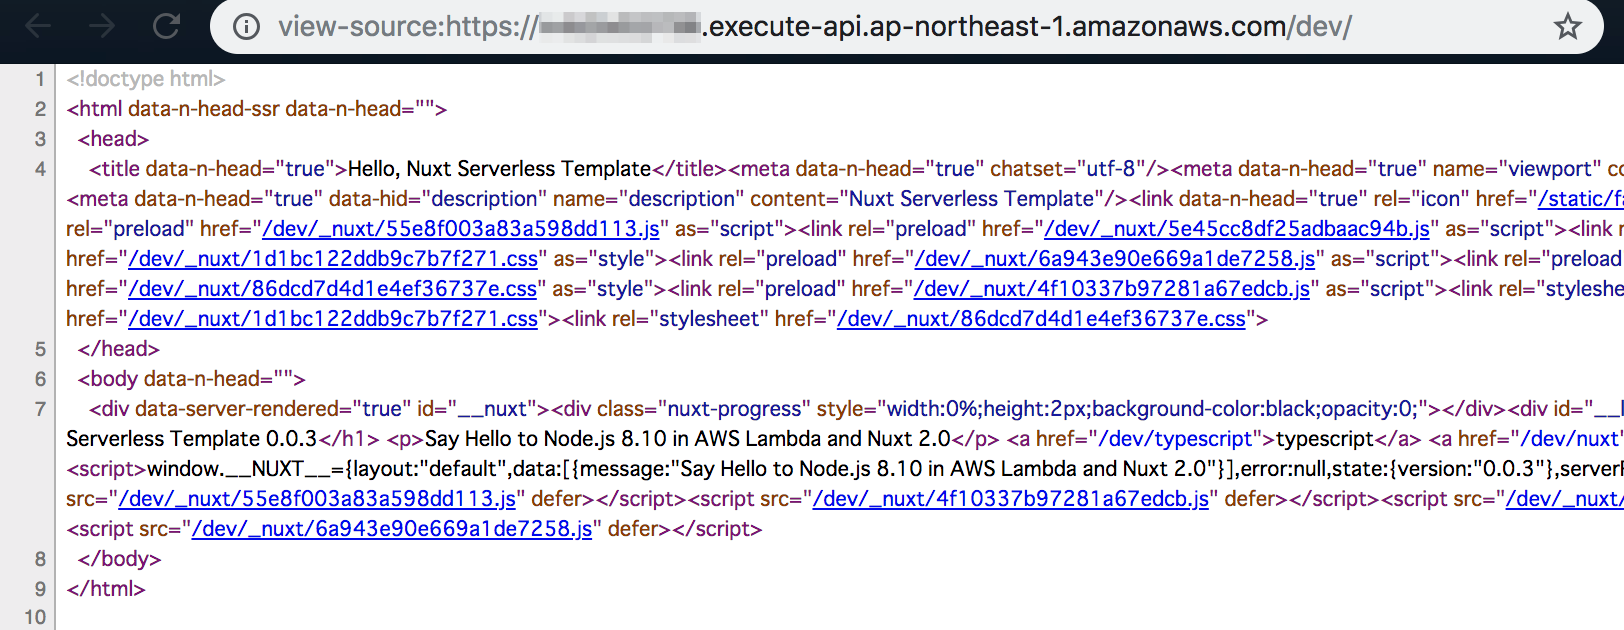 view-source_https___vvb2o02739_execute-api_ap-northeast-1_amazonaws_com_dev_.png